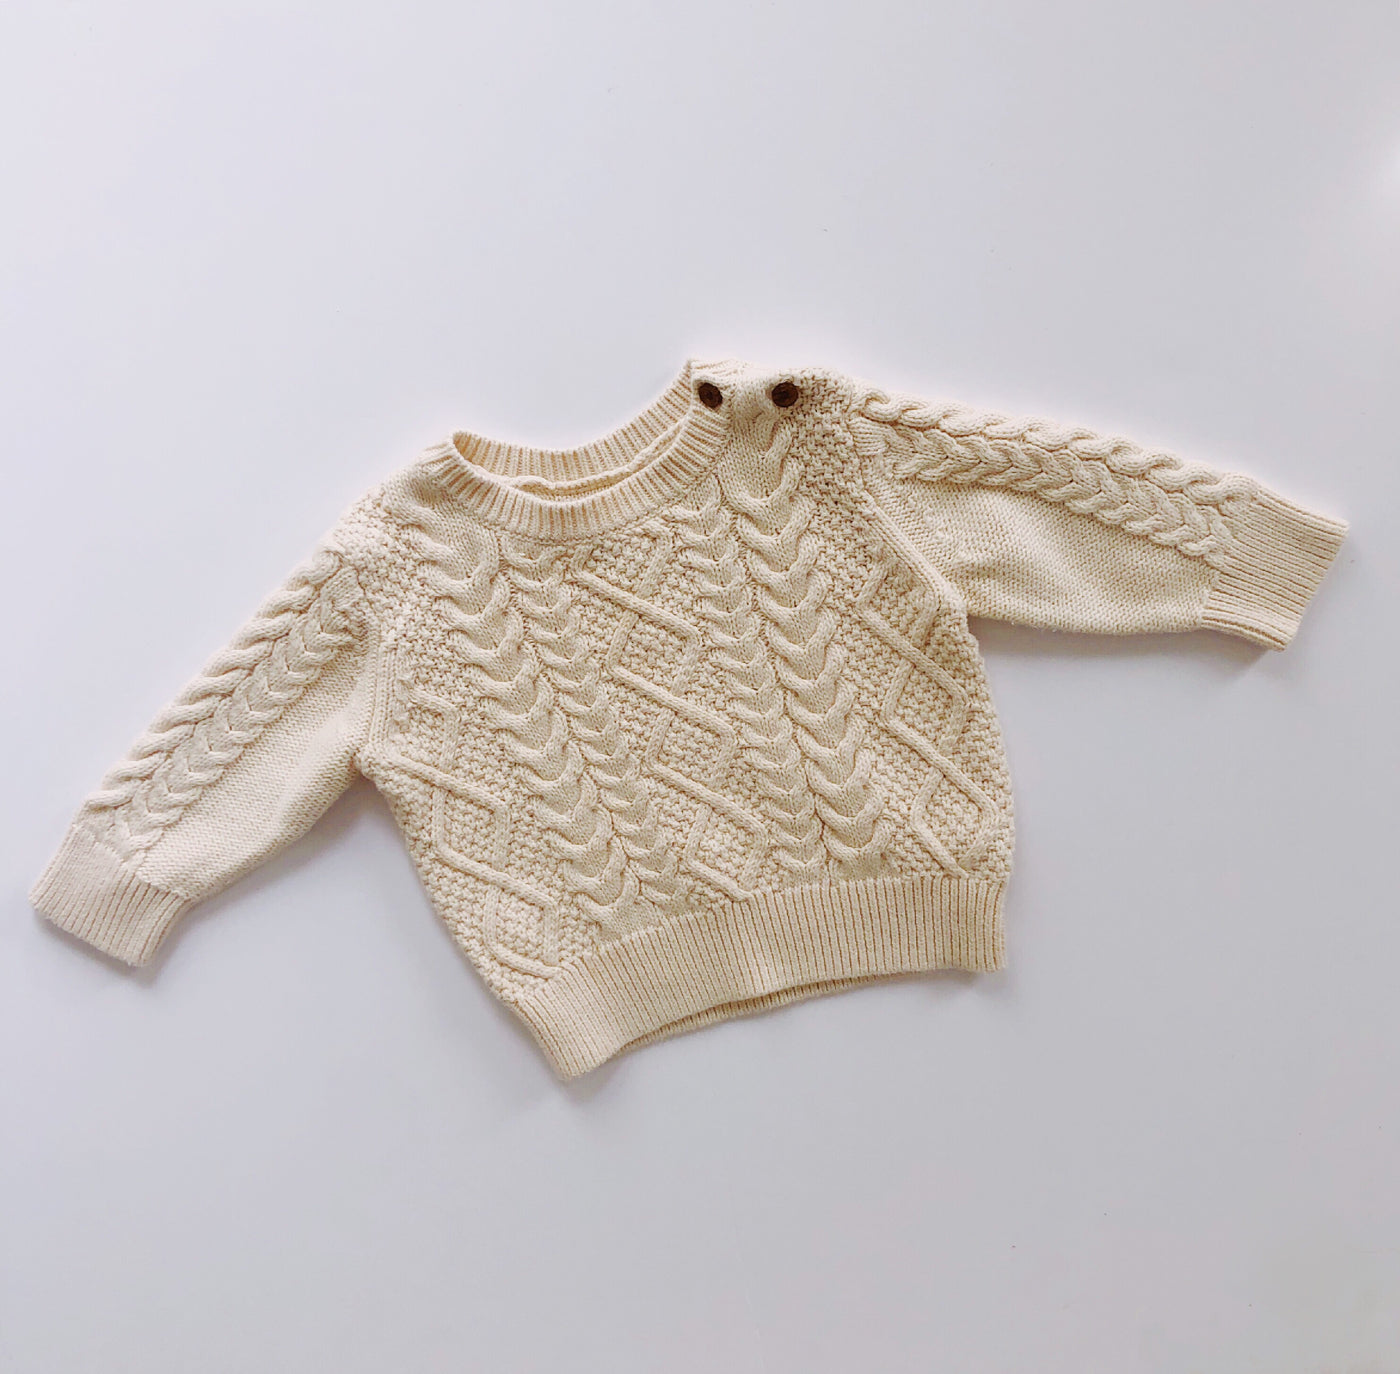 Baby Gap Cable Knit Creamy Sweater / Size 6-12M